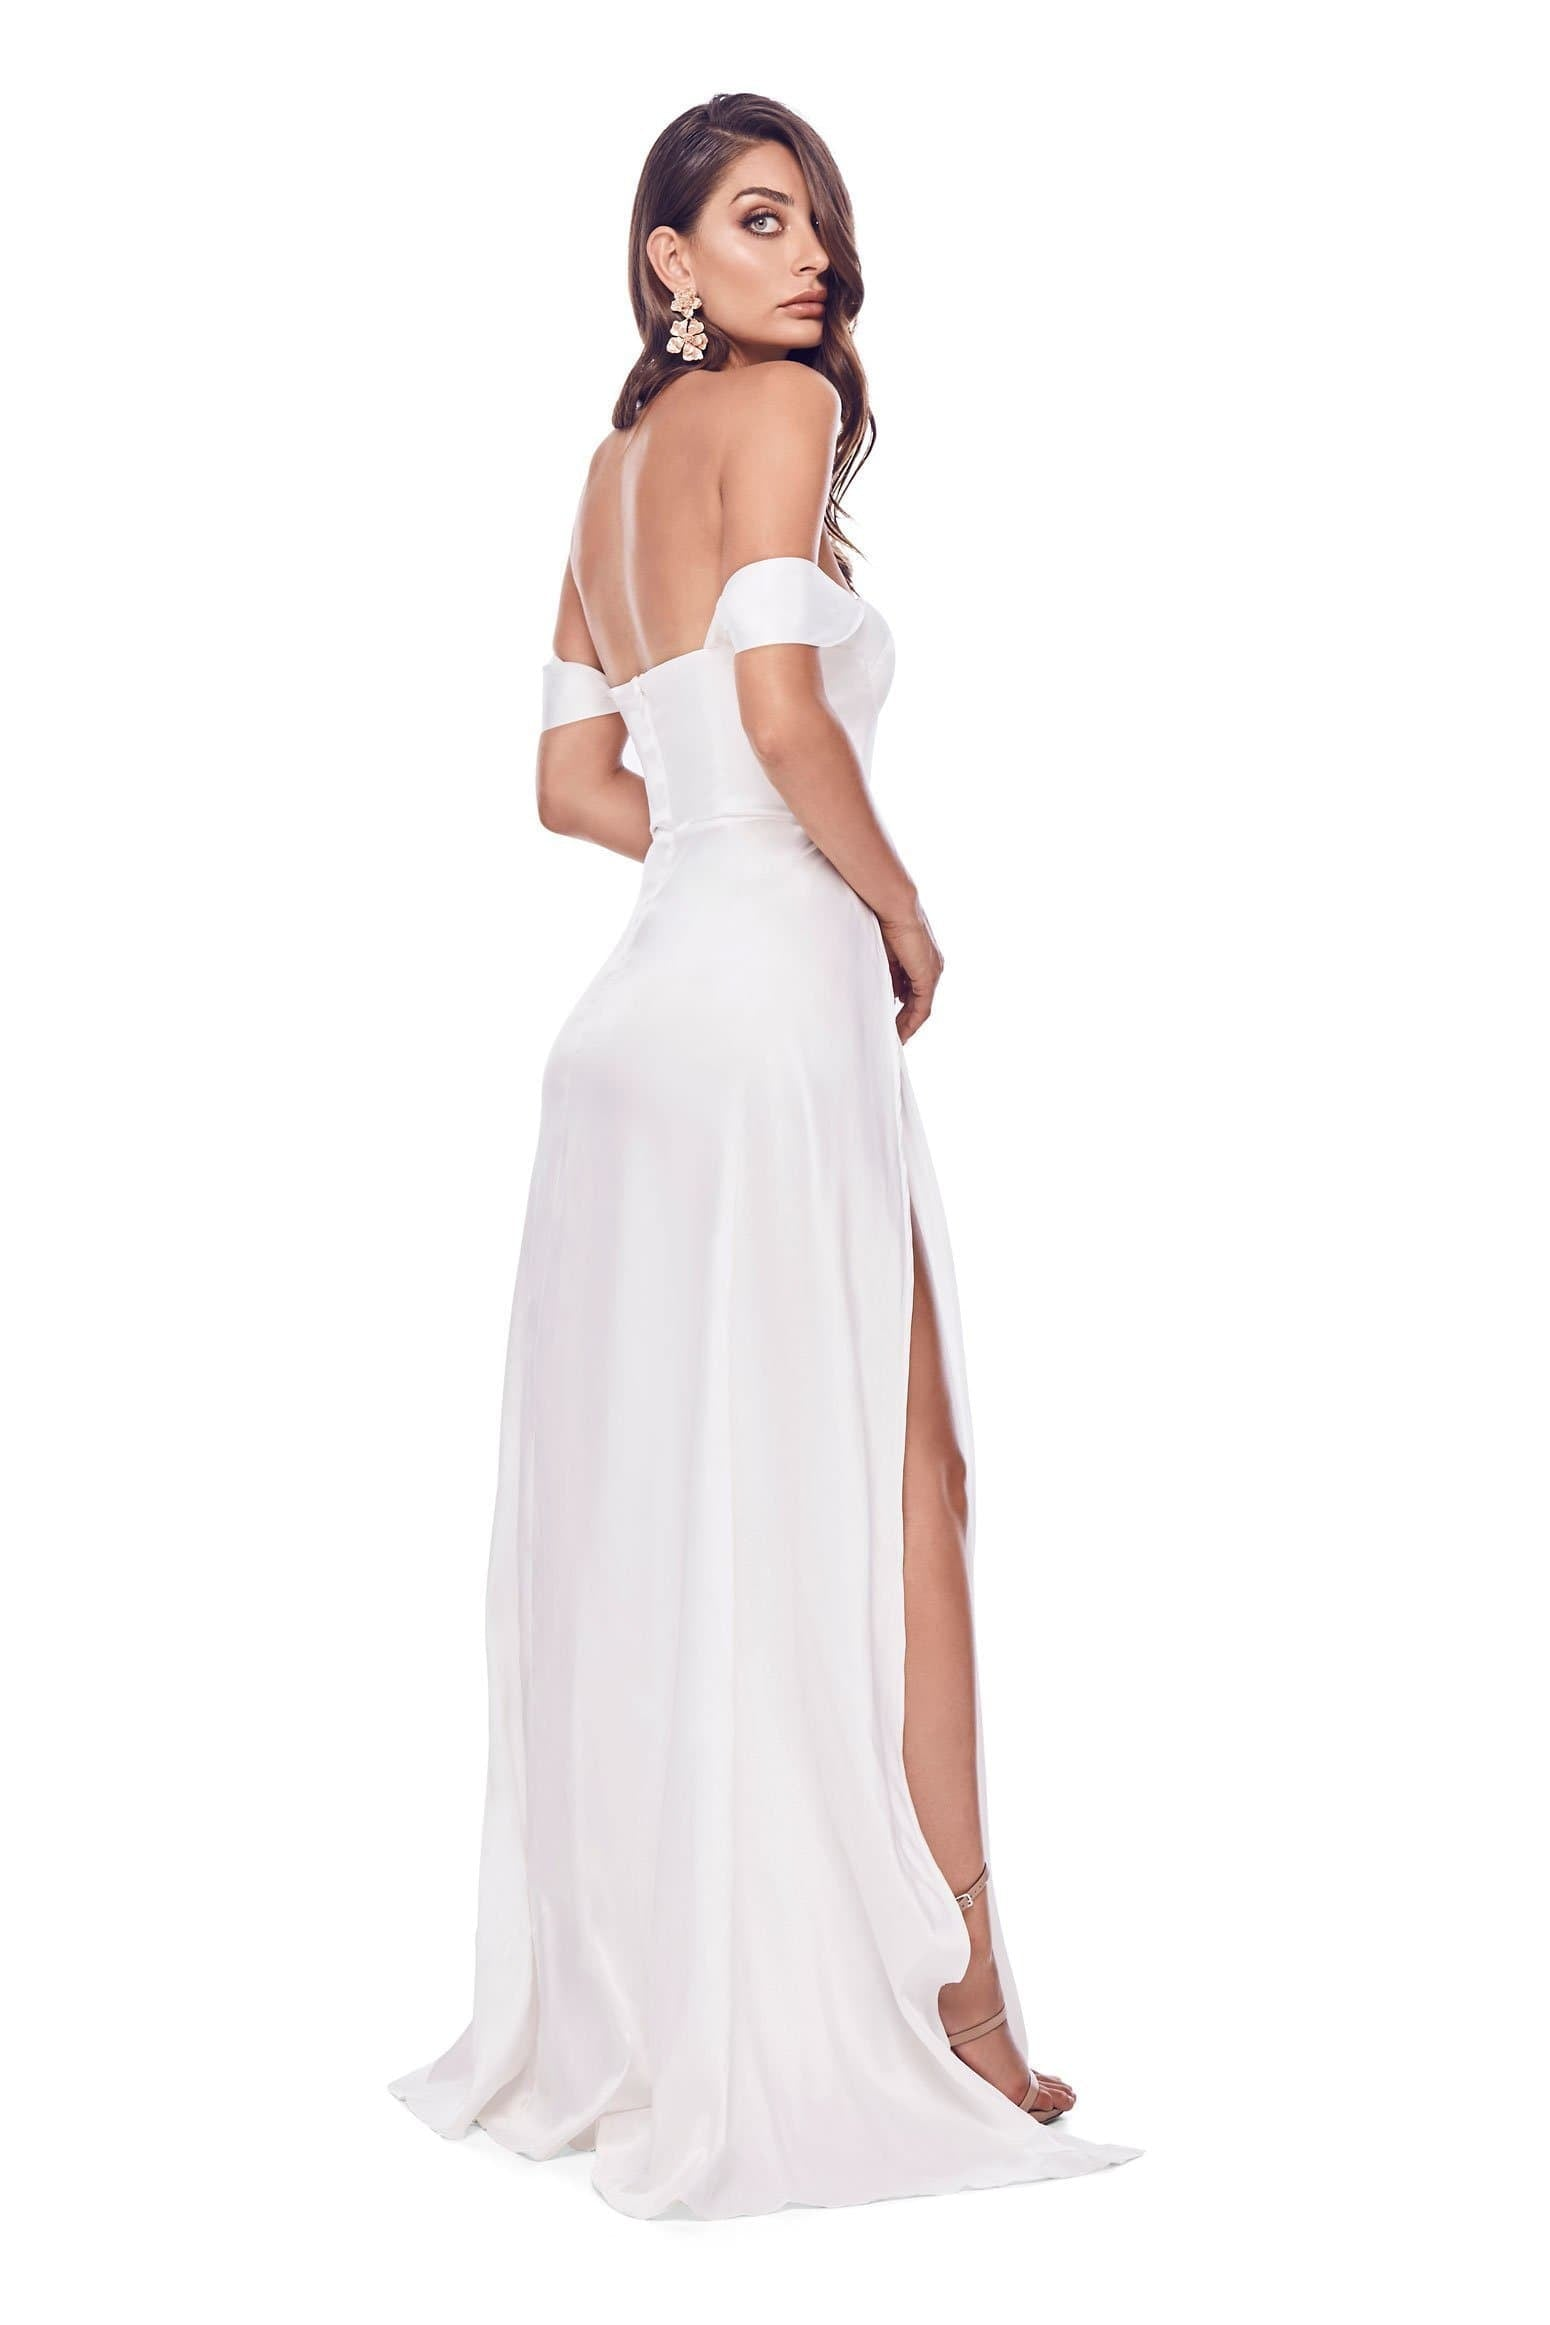 Dominikia - White Satin Gown with Off-Shoulder Drapes & Side Slits